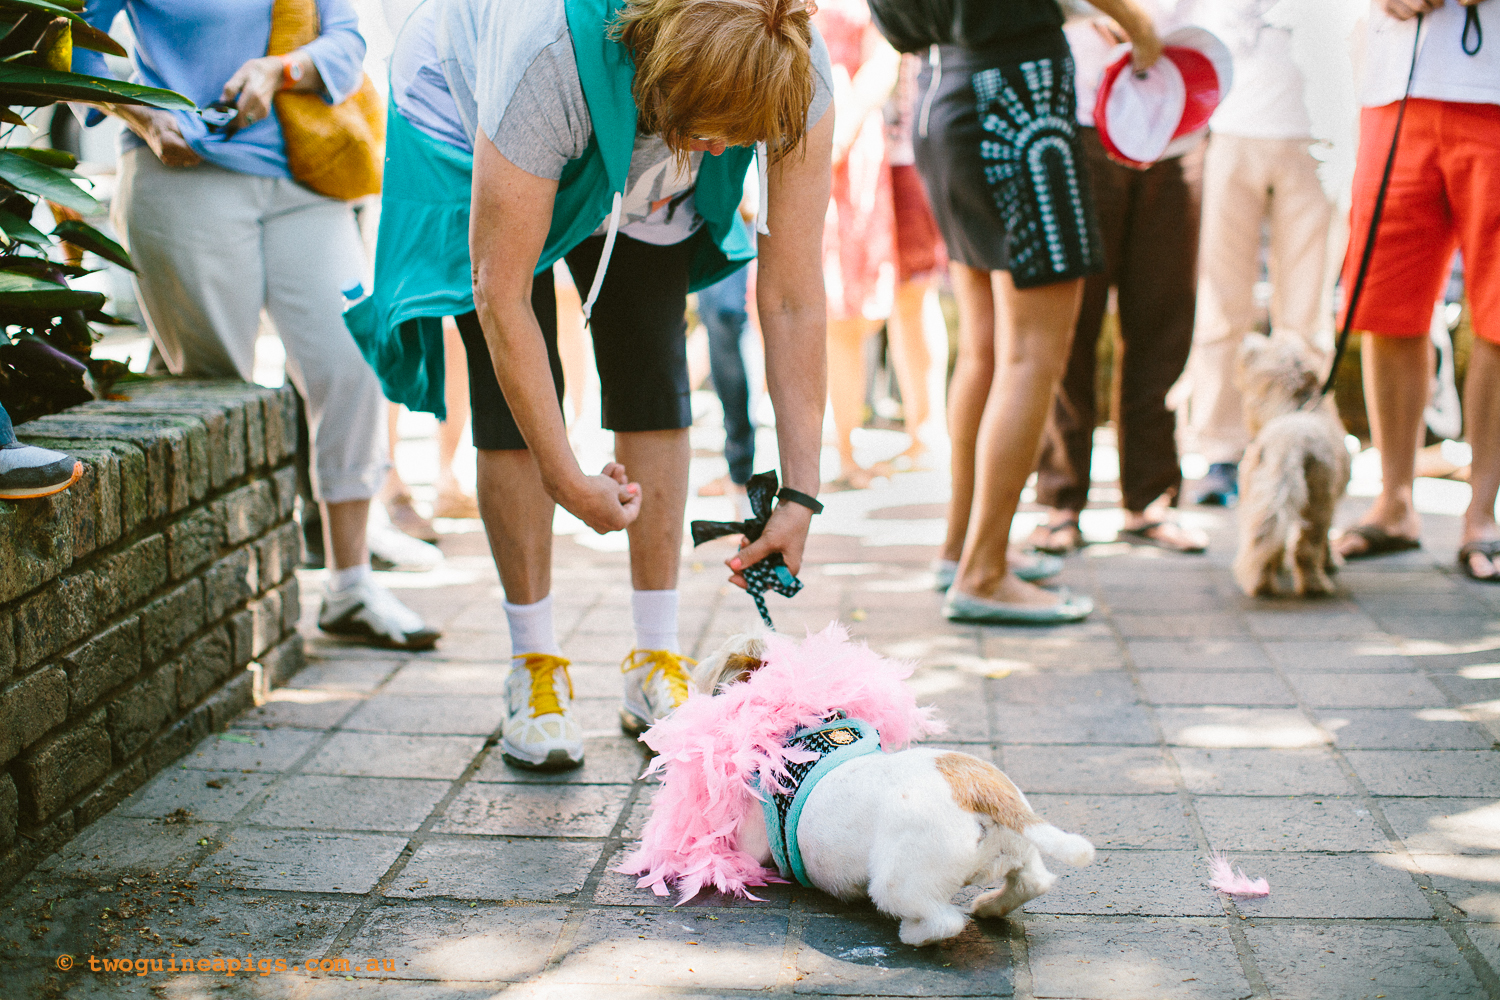 twoguineapigs_pet_photography_kxfestival_ppvh_20141012_1500-14.jpg